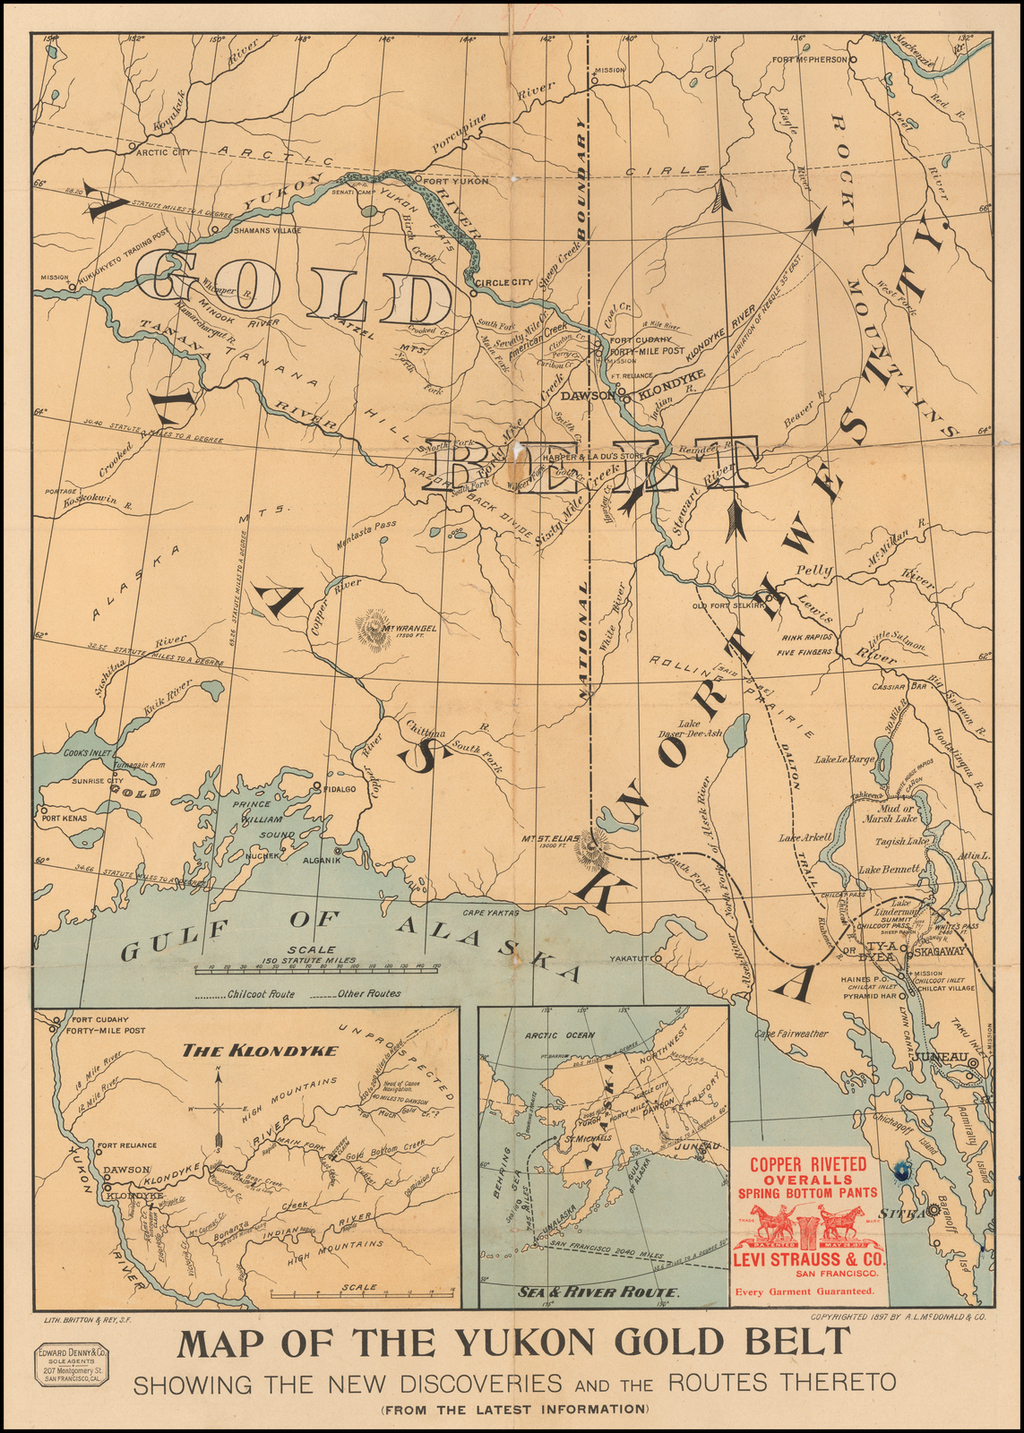 Map of the Yukon Gold Belt Showing The New Discoveries and the Routes Thereto (From The Latest Information)  (with Levi Strauss & Co. Advertising) By Britton & Rey / A.L. McDonald